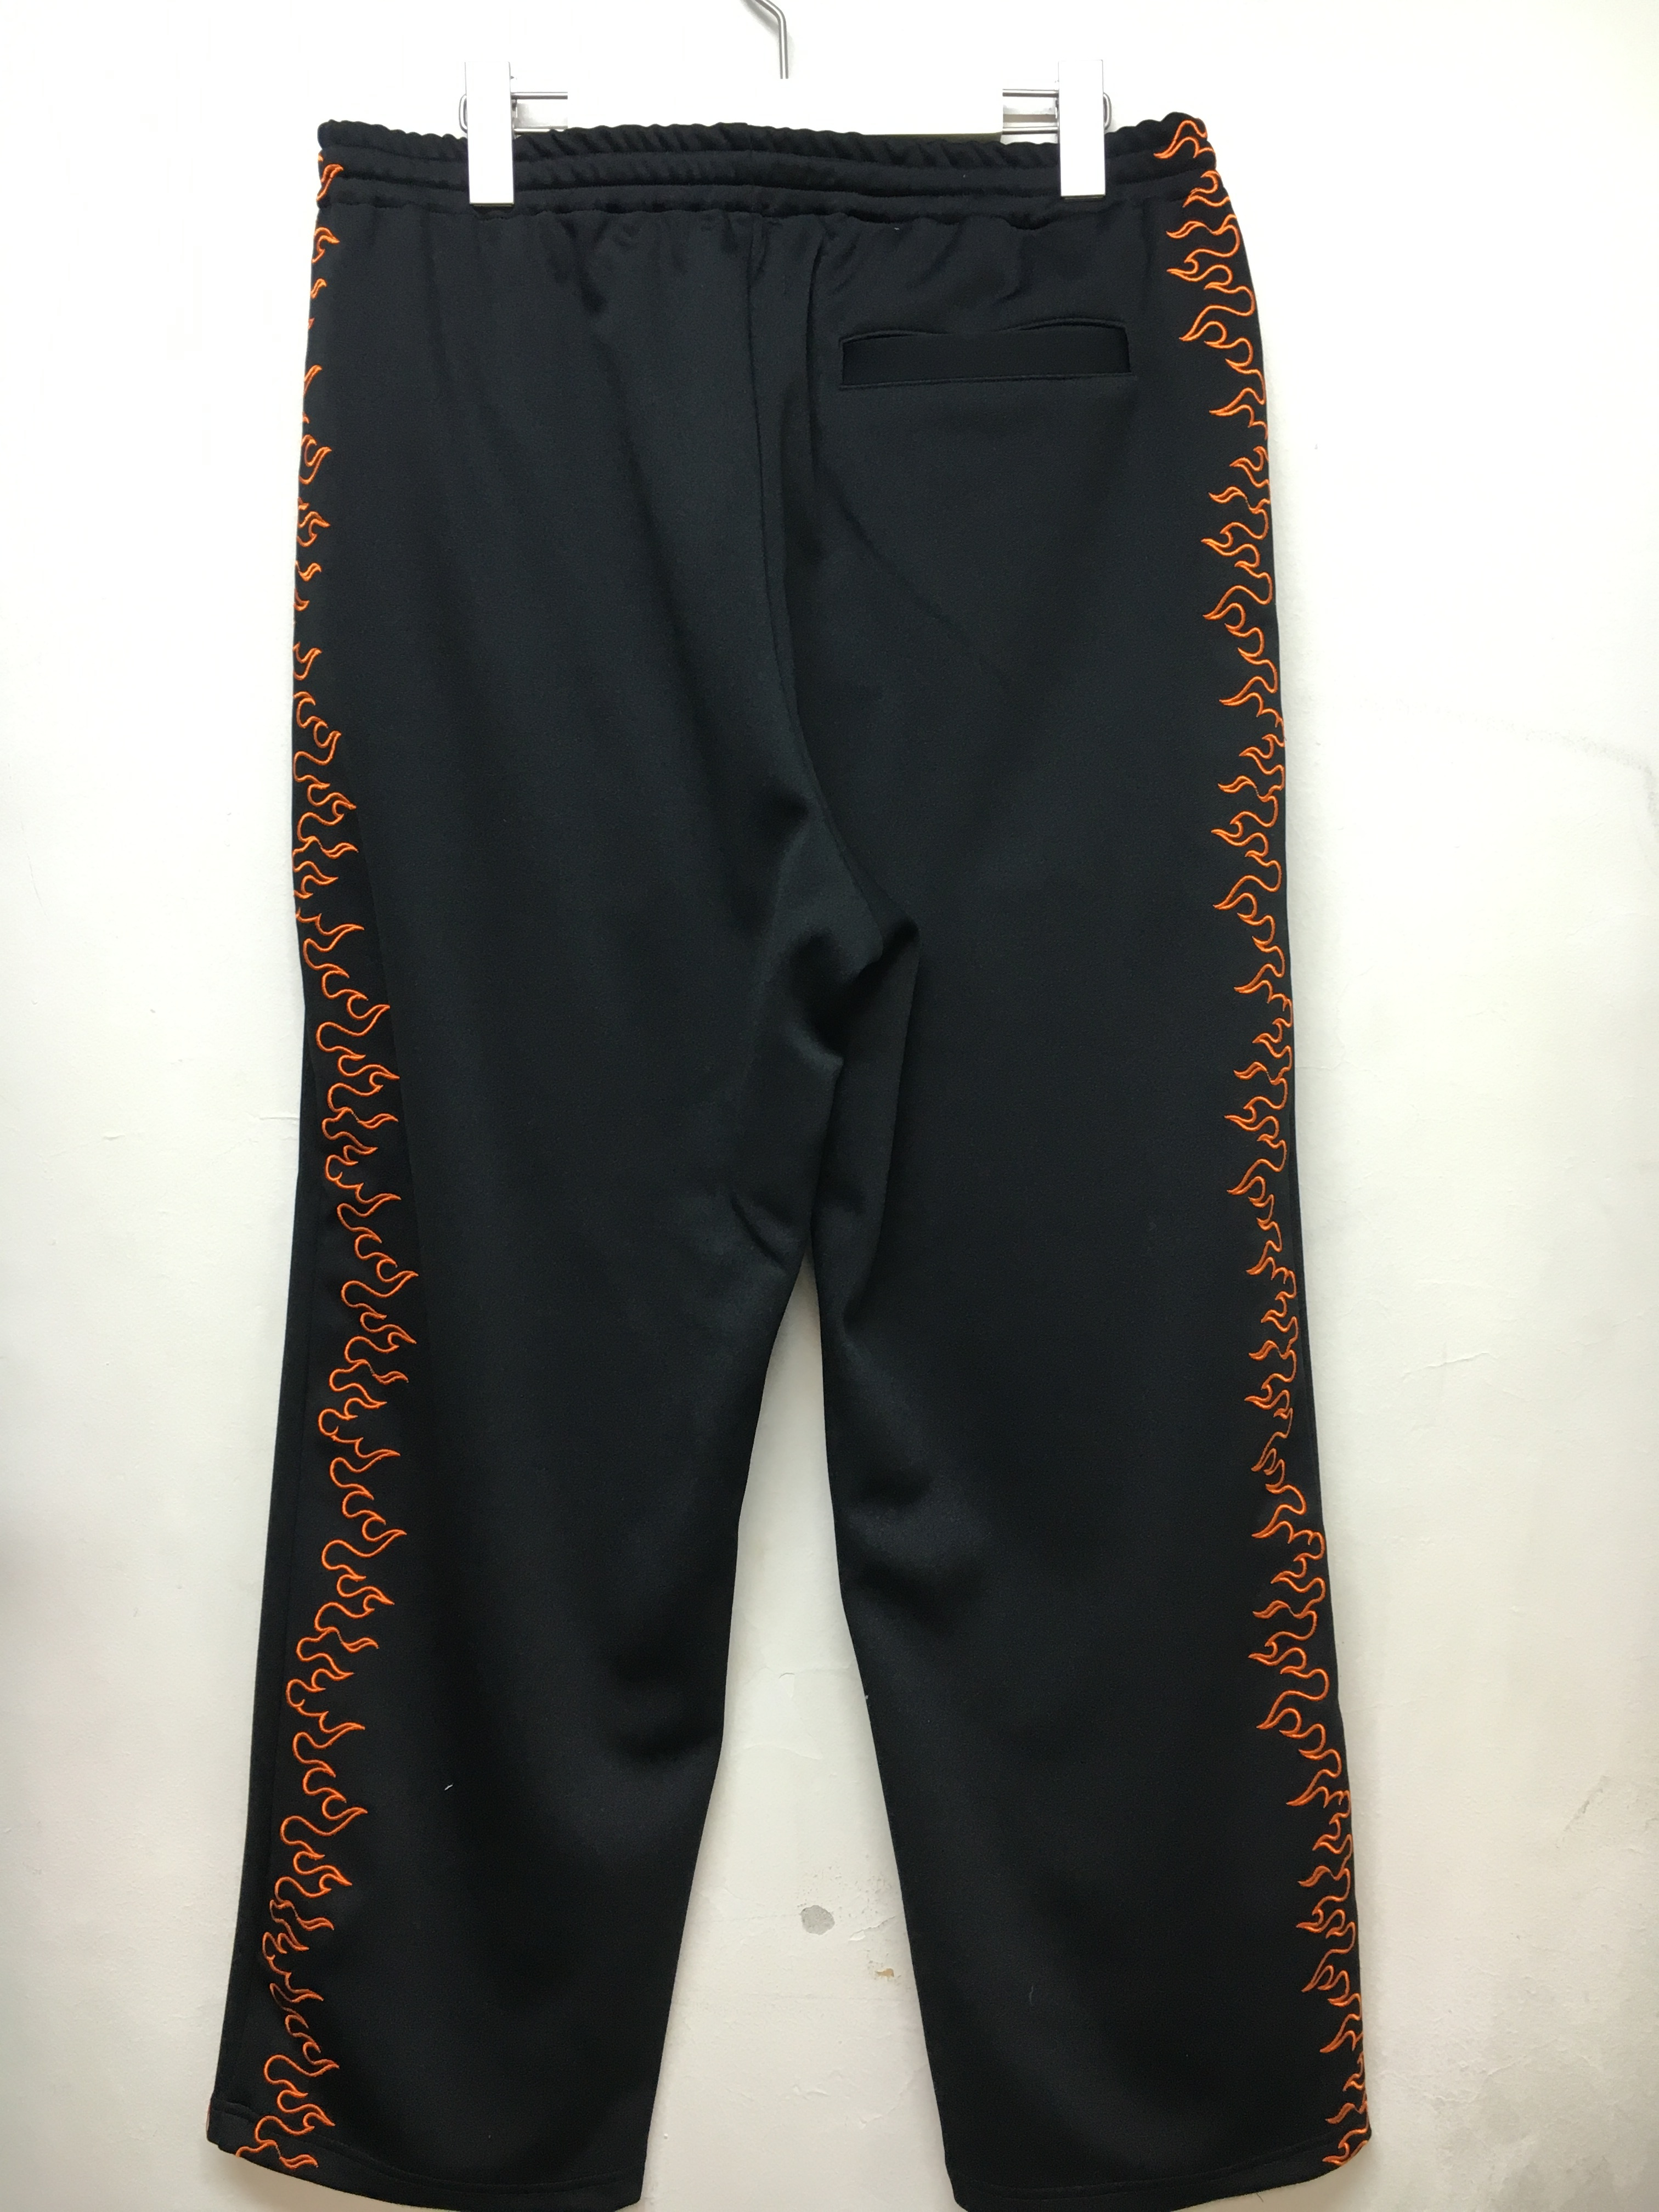 SKIN / FIRE TRACK PANTS -black - 画像2